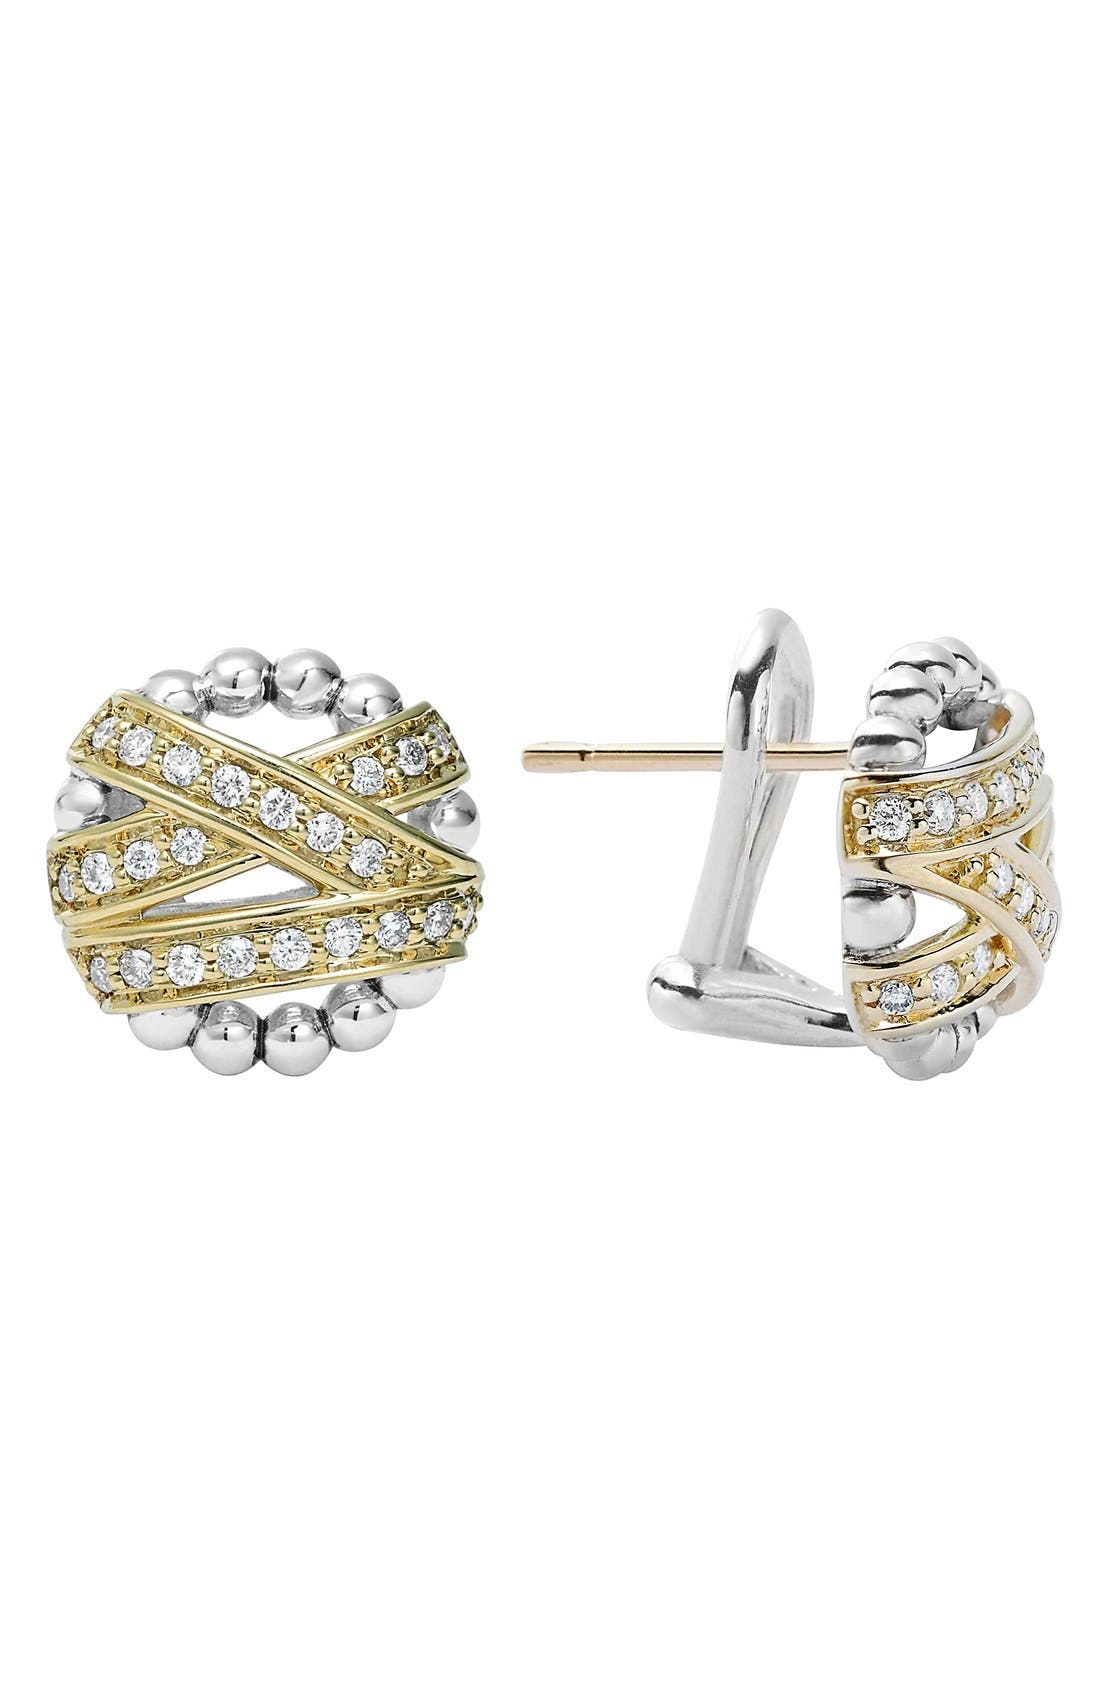 'Diamonds & Caviar' Diamond Stud Earrings,                             Main thumbnail 1, color,                             710